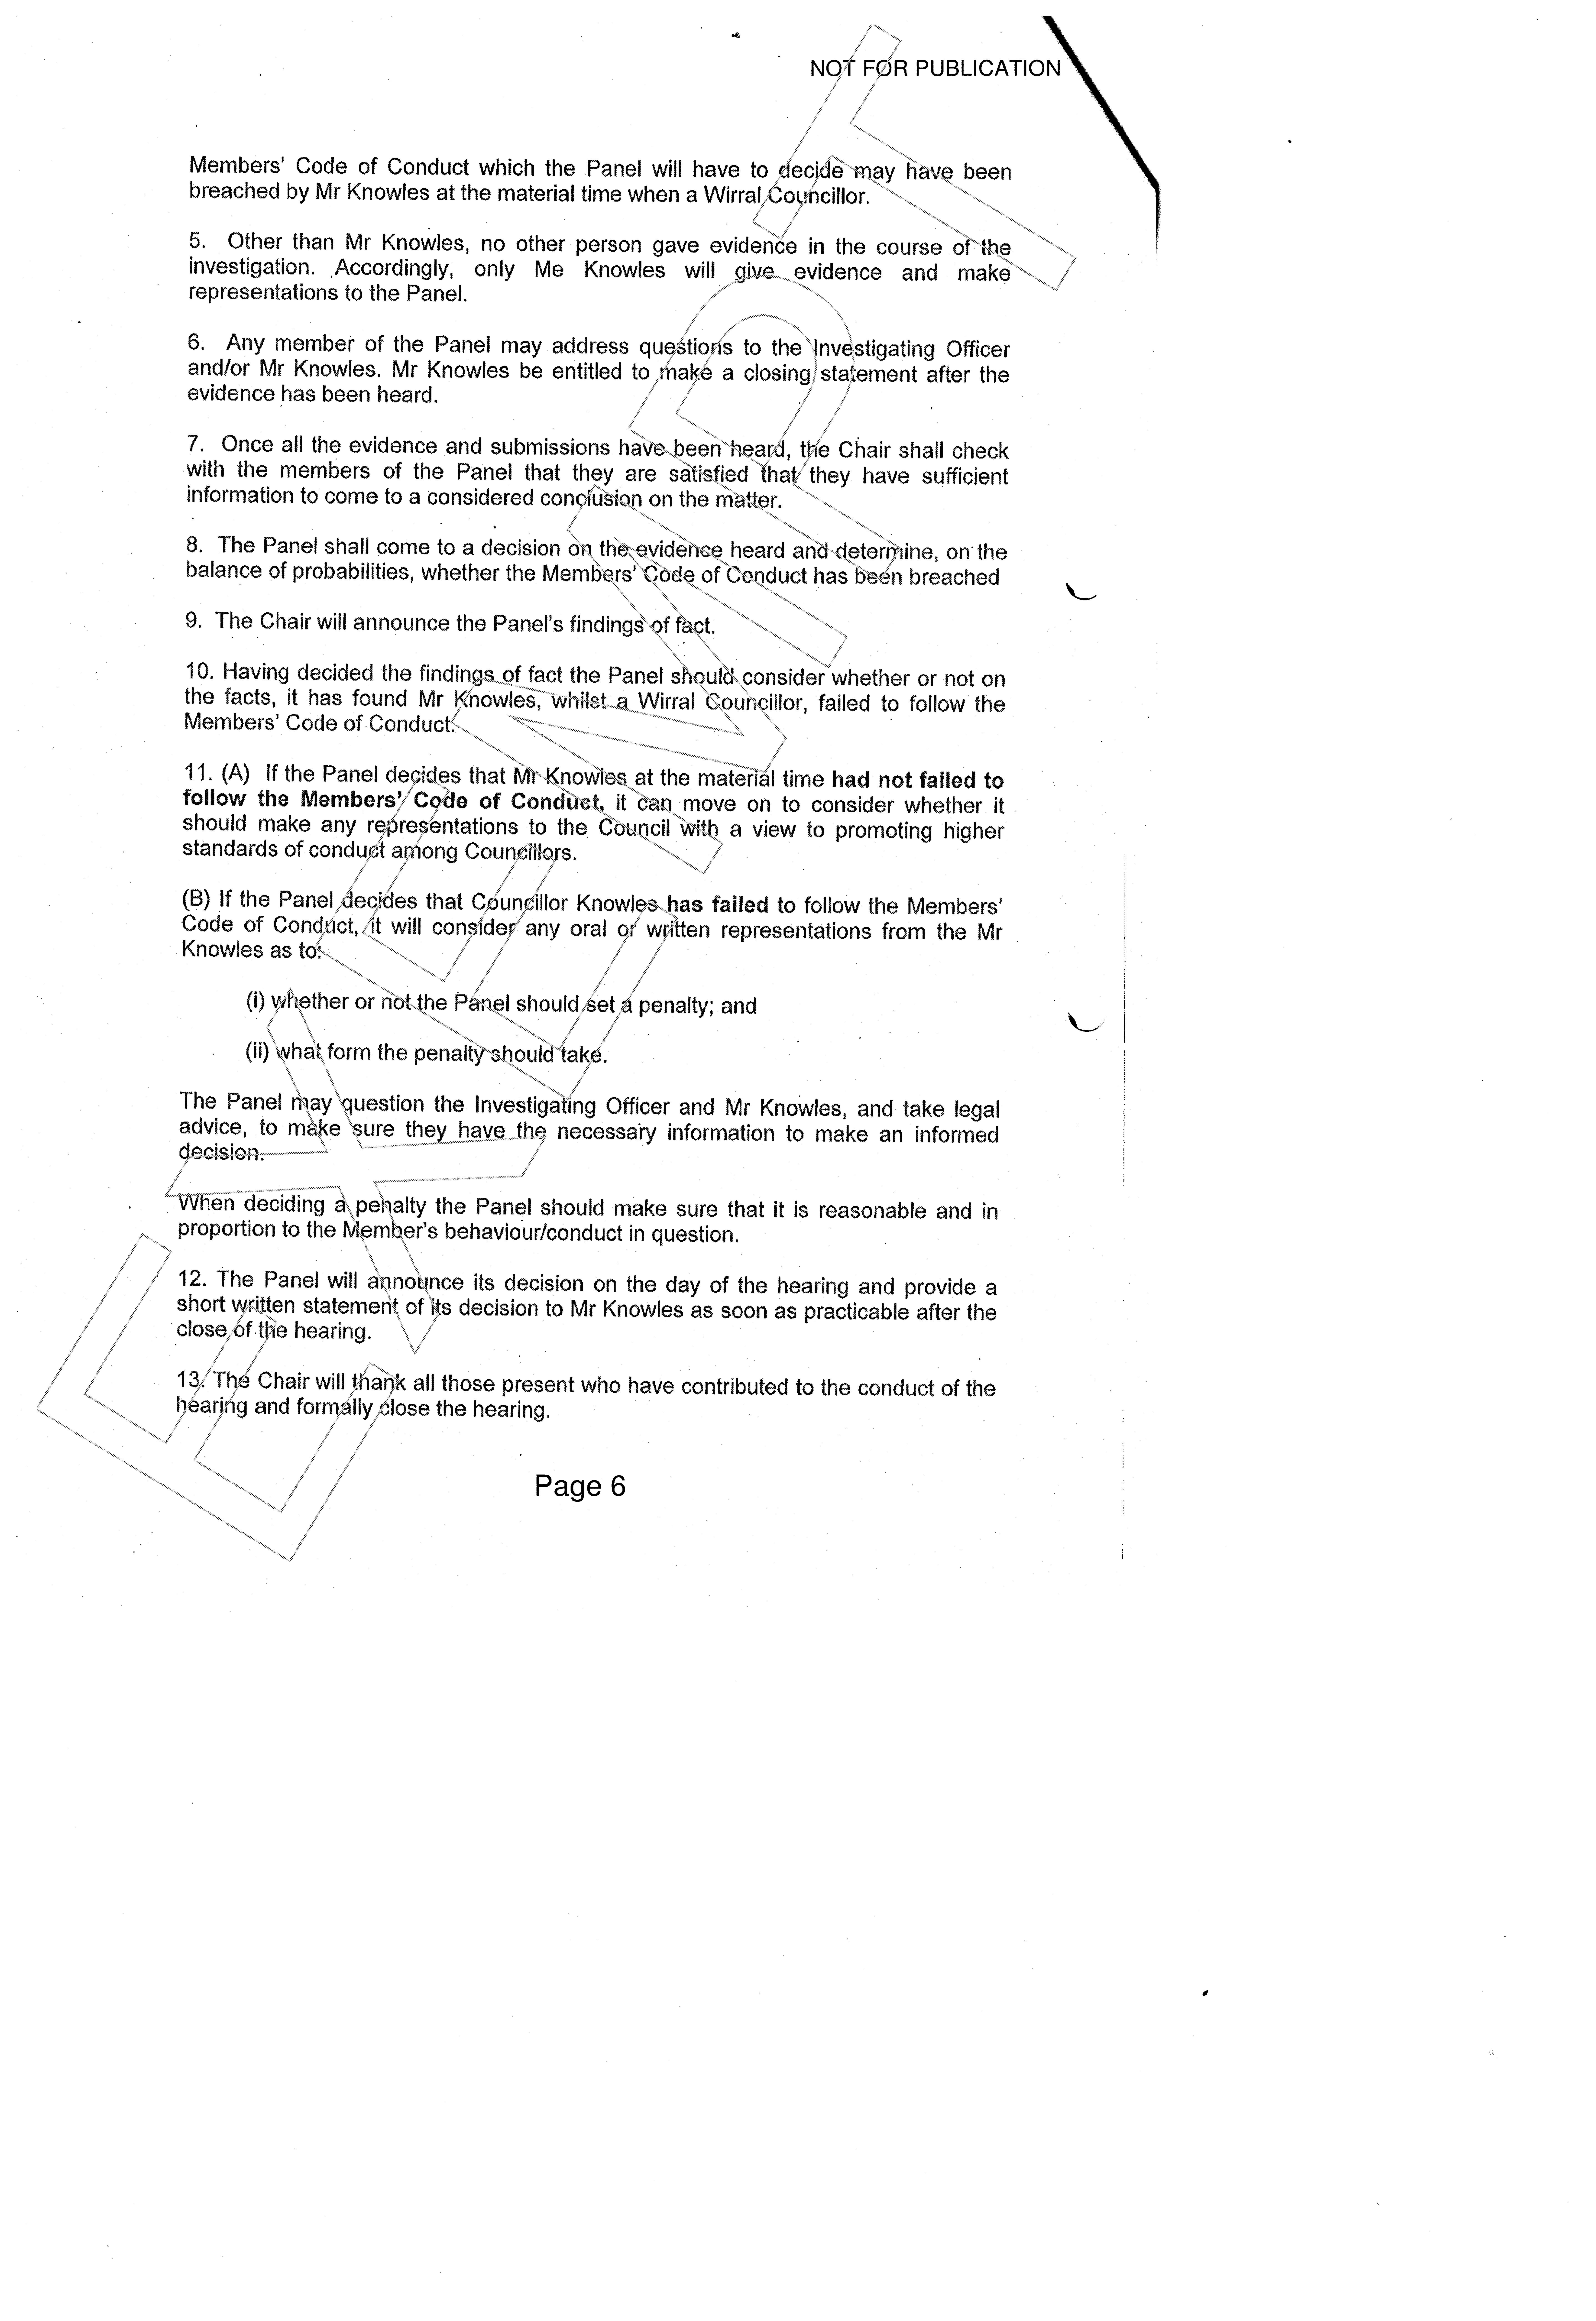 Agenda Item 3 Report of the Monitoring Officer Page 6 of 7